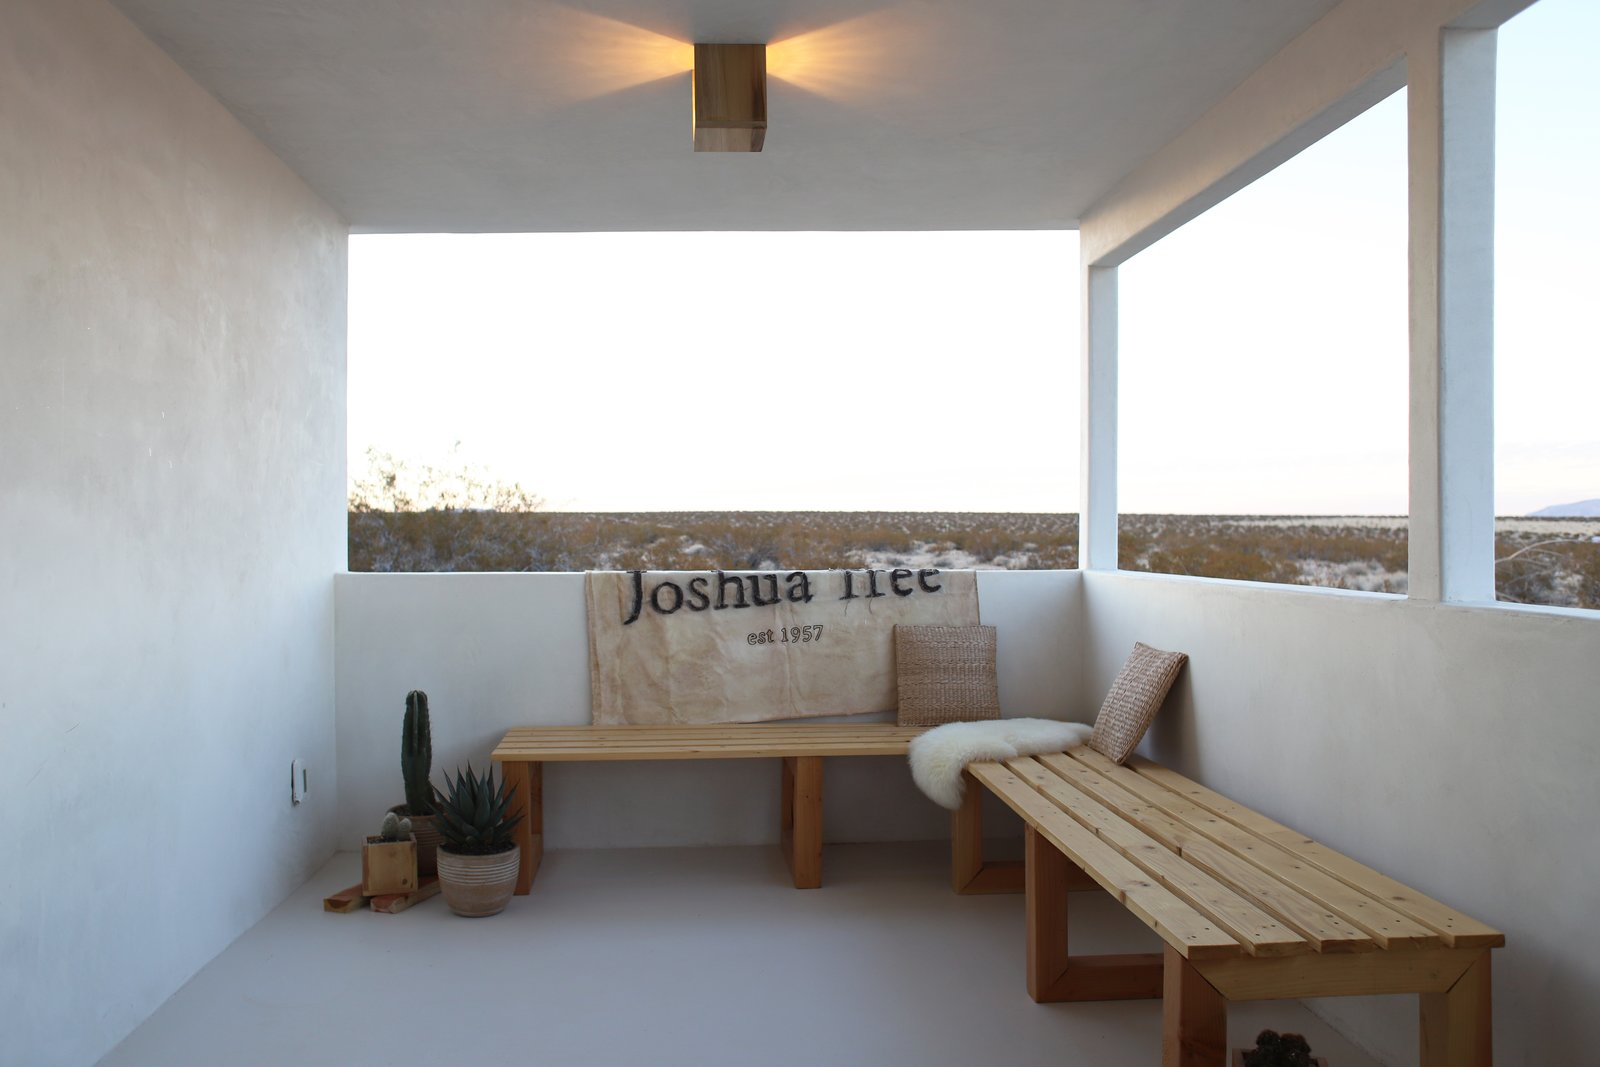 """Qn the opposite end of the covered patio the Smirkes built two long benches that overlook the open desert. The canvas is a flag they had made by Lindsay Smith of Makers Workshop that says, """"Joshua Tree Est. 1957"""" the year the original cabin was constructed."""